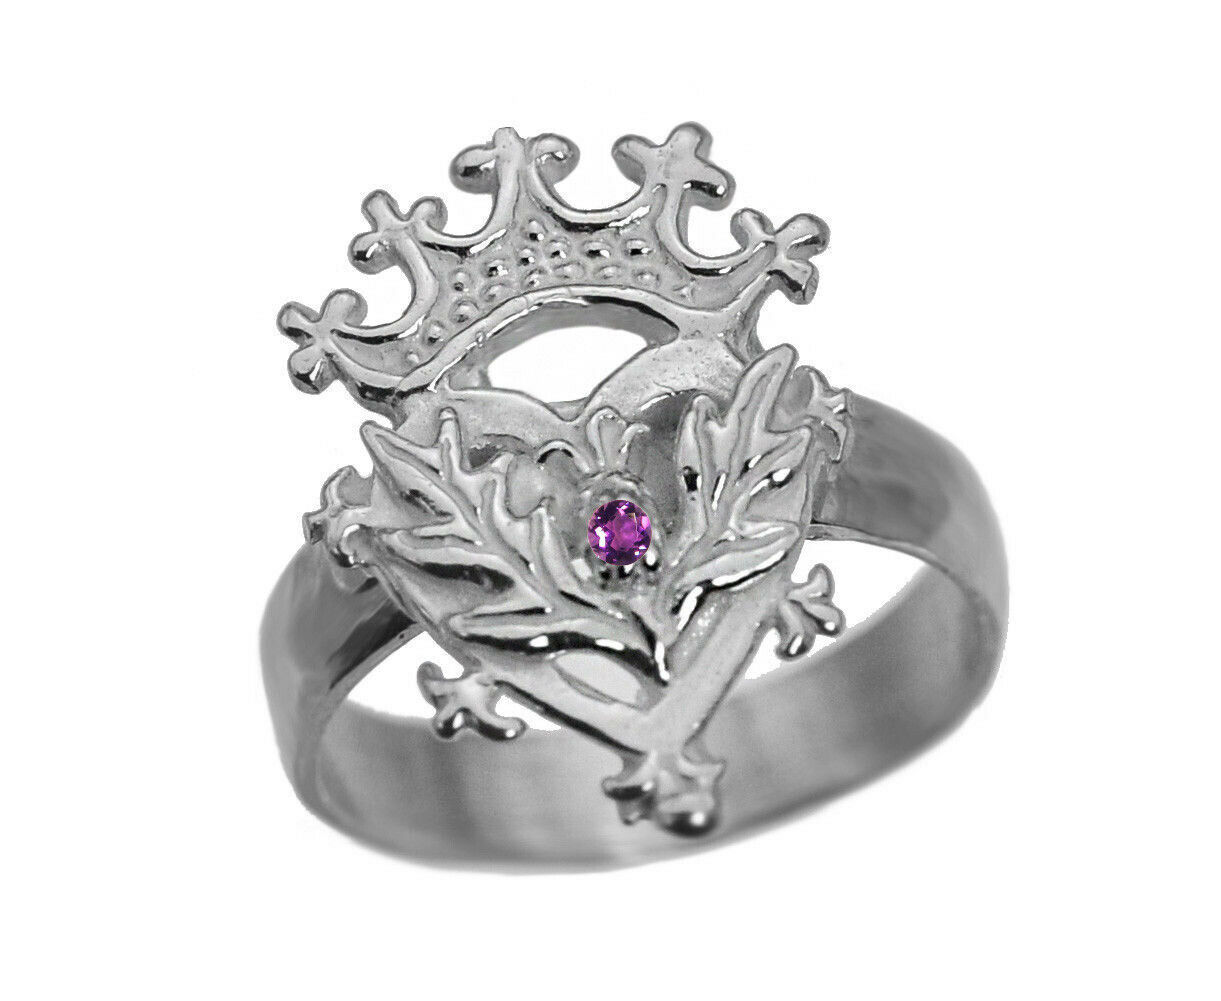 Scottish Luckenbooth Ring Sterling Silver Heart Crown Amethyst Thistle Celtic